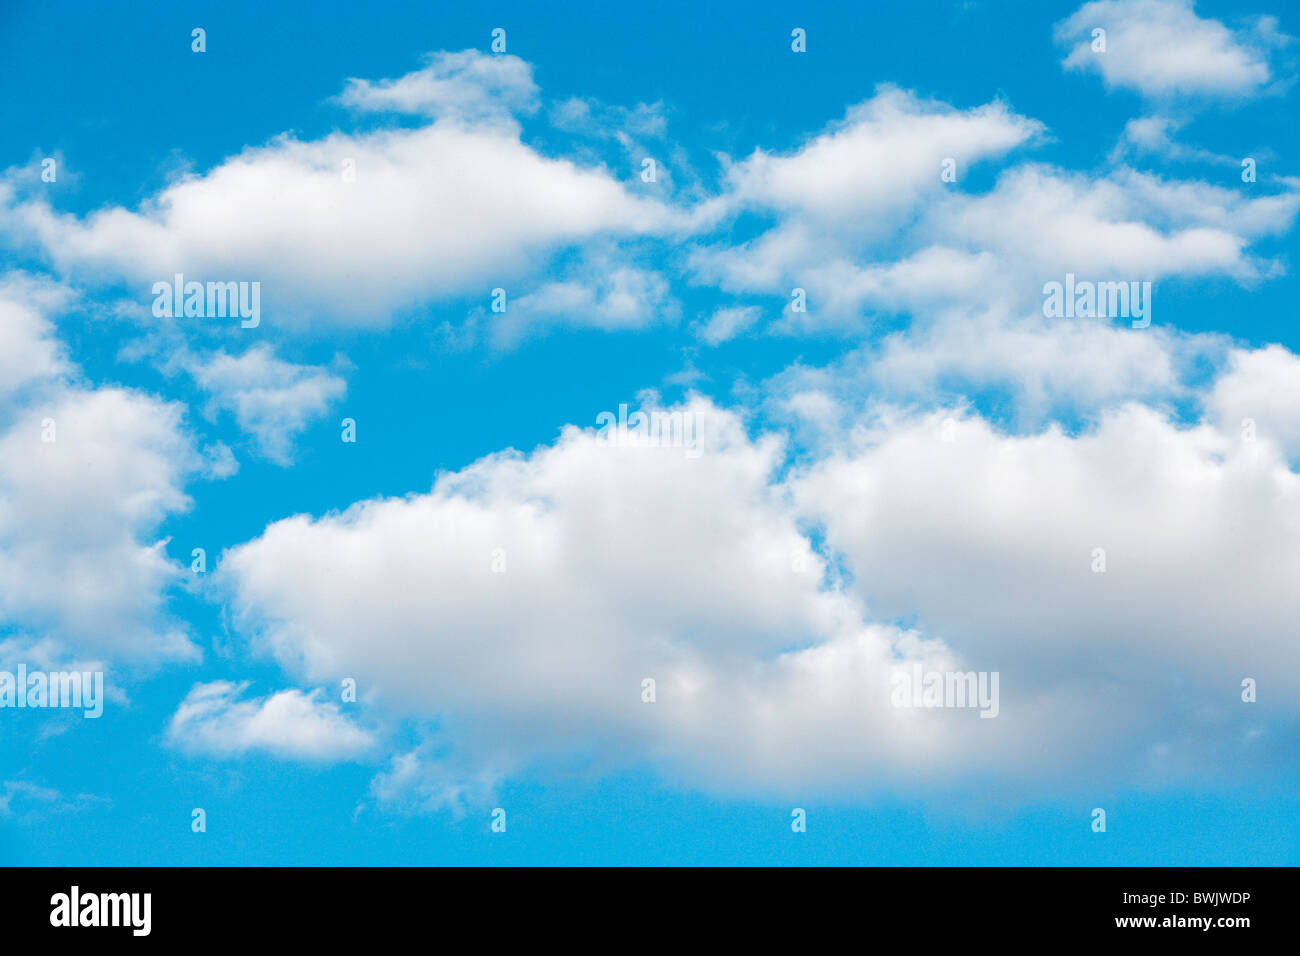 Air Atmosphere Background Backgrounds Blue Cloud Clouds Color